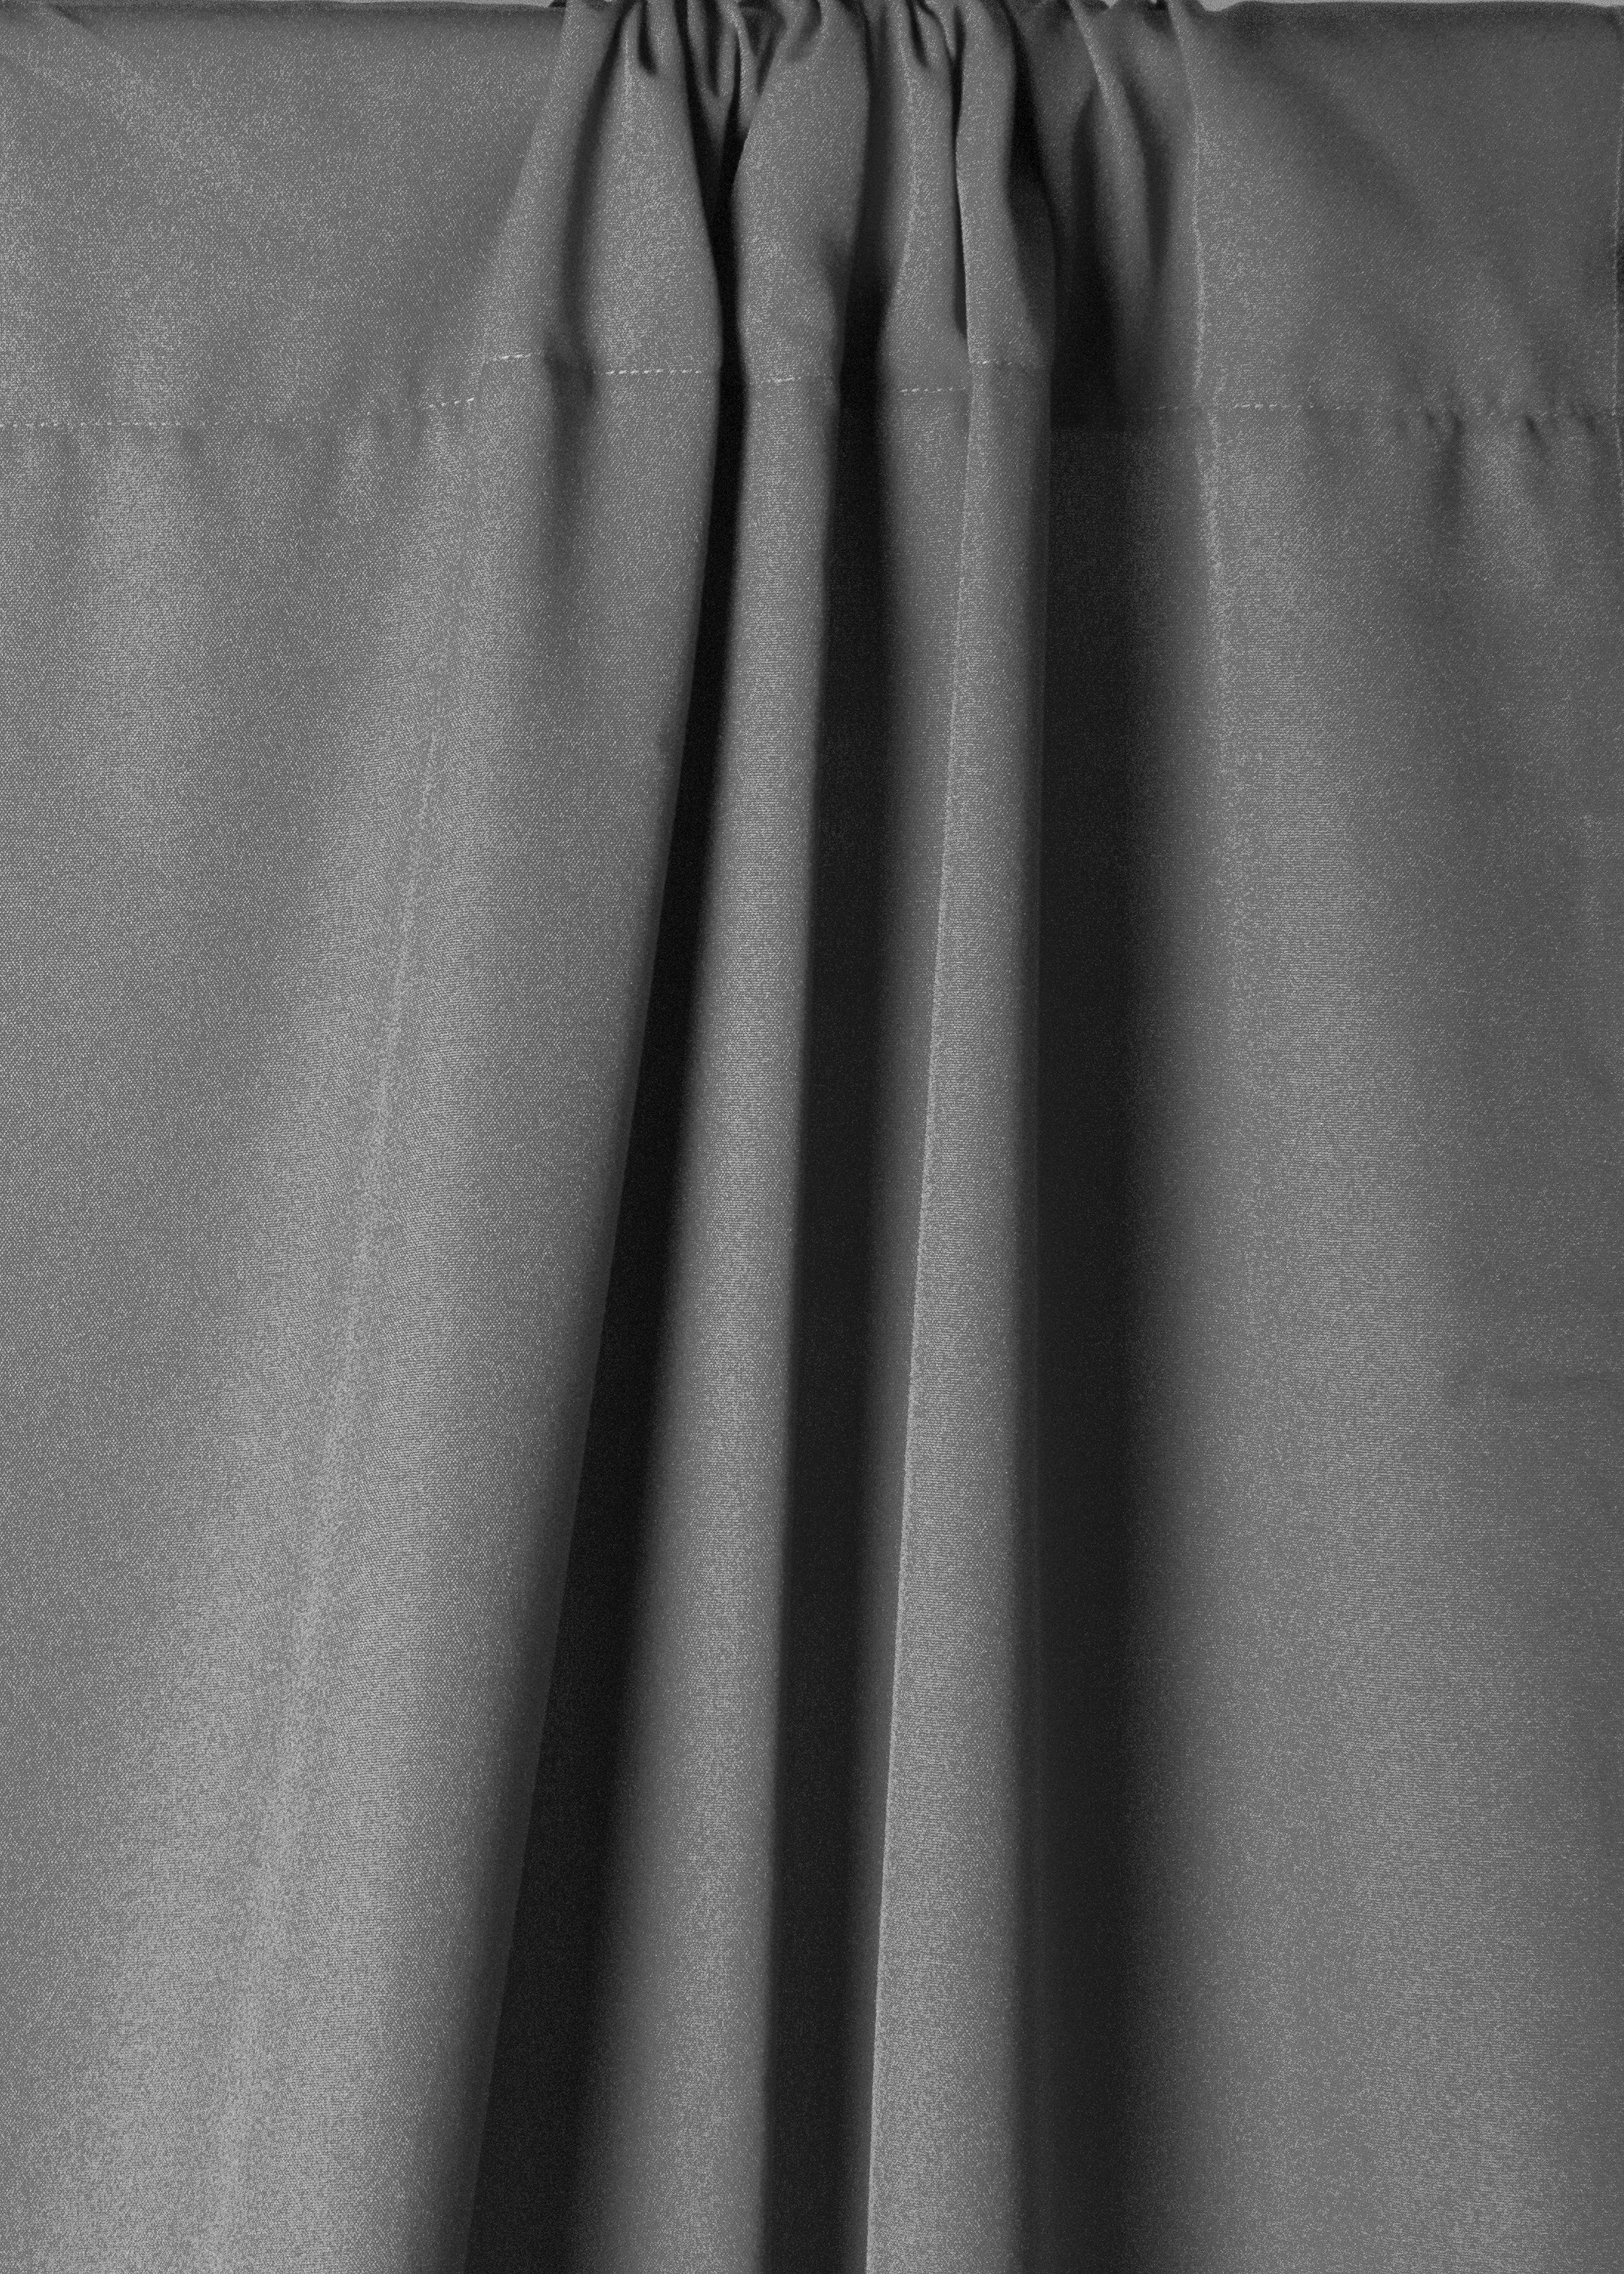 Savage Solid Eco Gray 1.52m x 2.74m Wrinkle Resistant Polyester Background